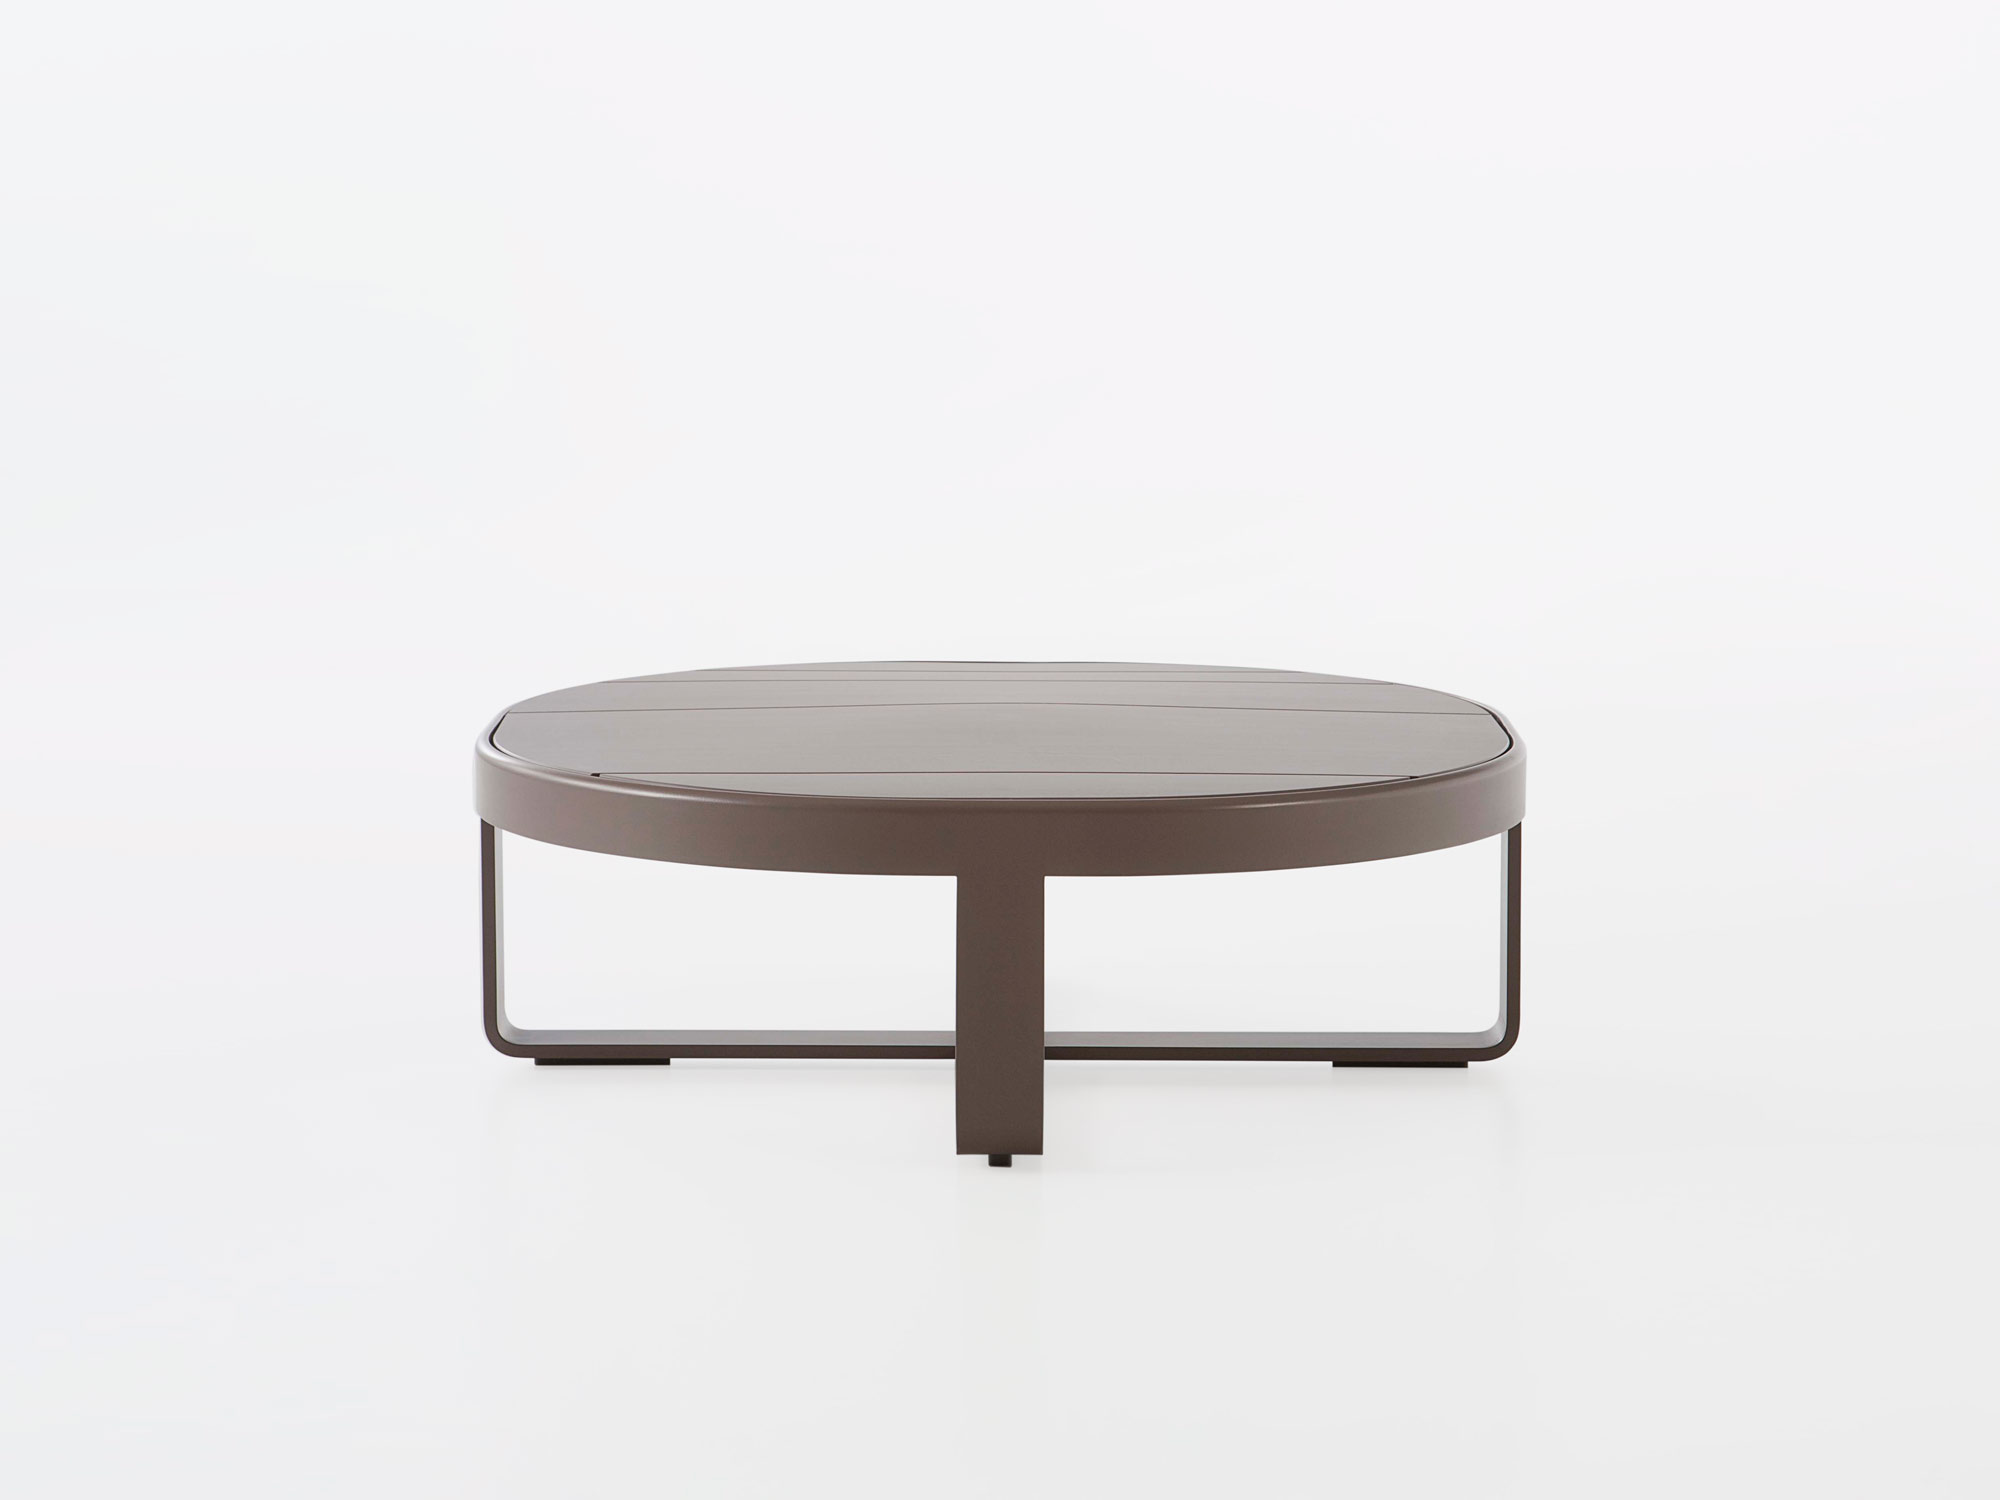 Flat Round Tables